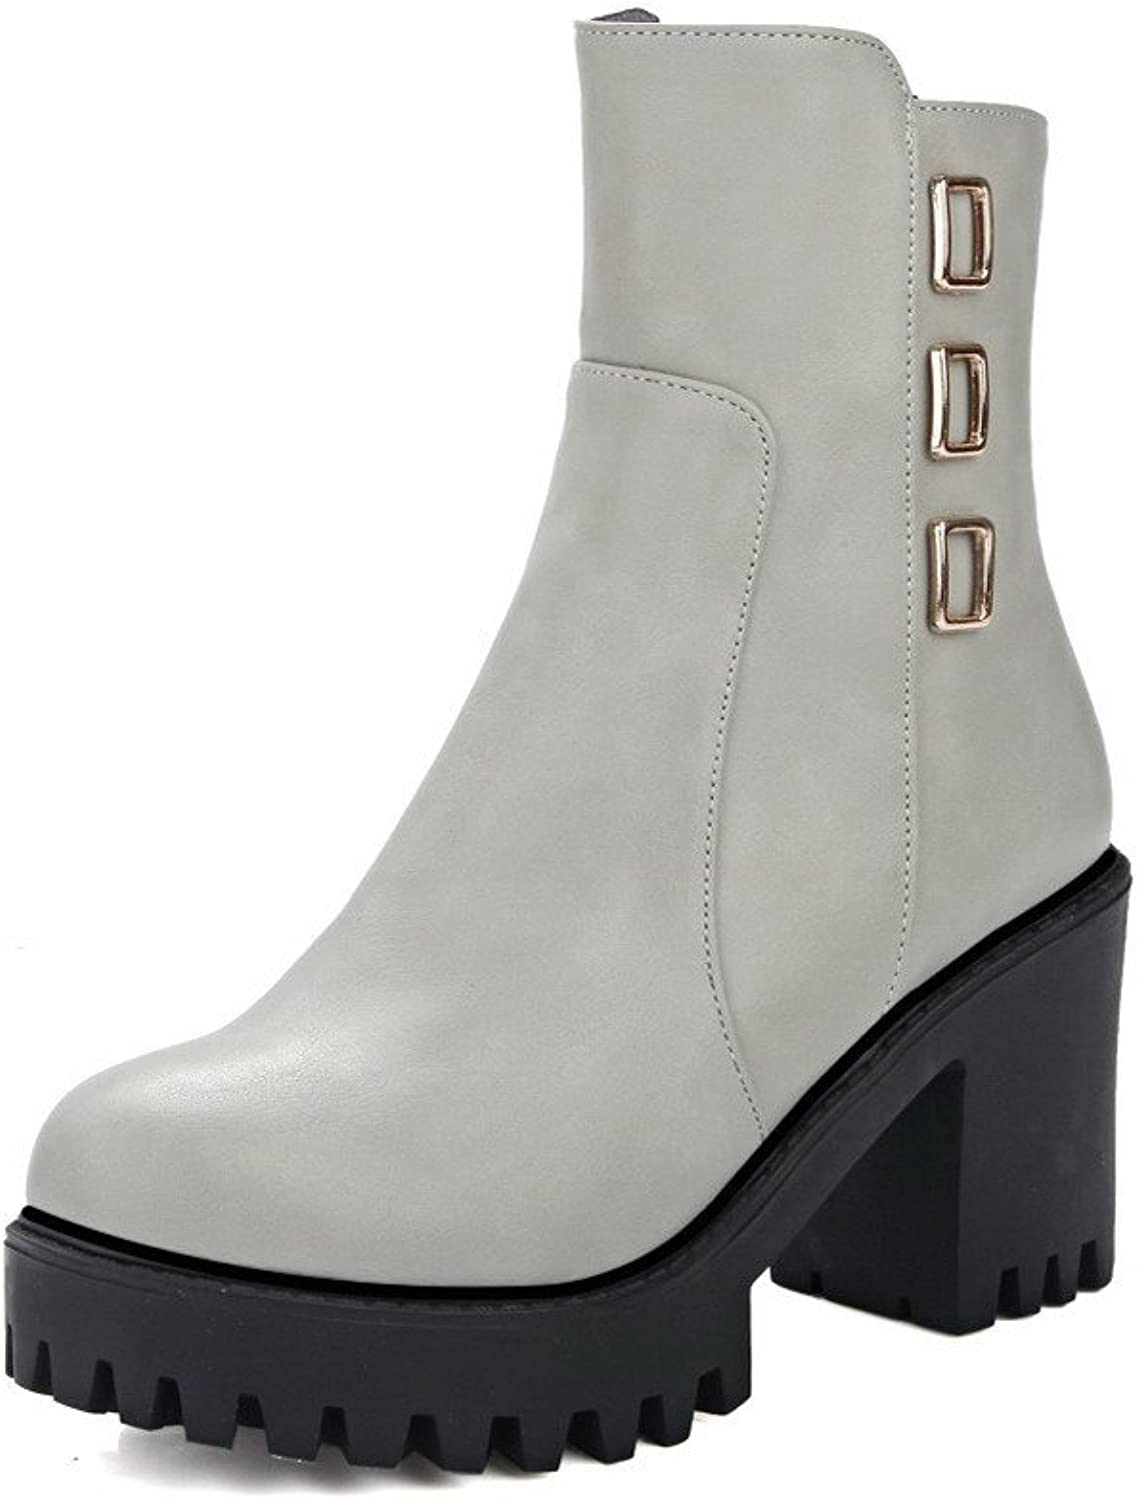 AllhqFashion Women's Low-top Chains Soft Material High Heels Round Closed Toe Boots